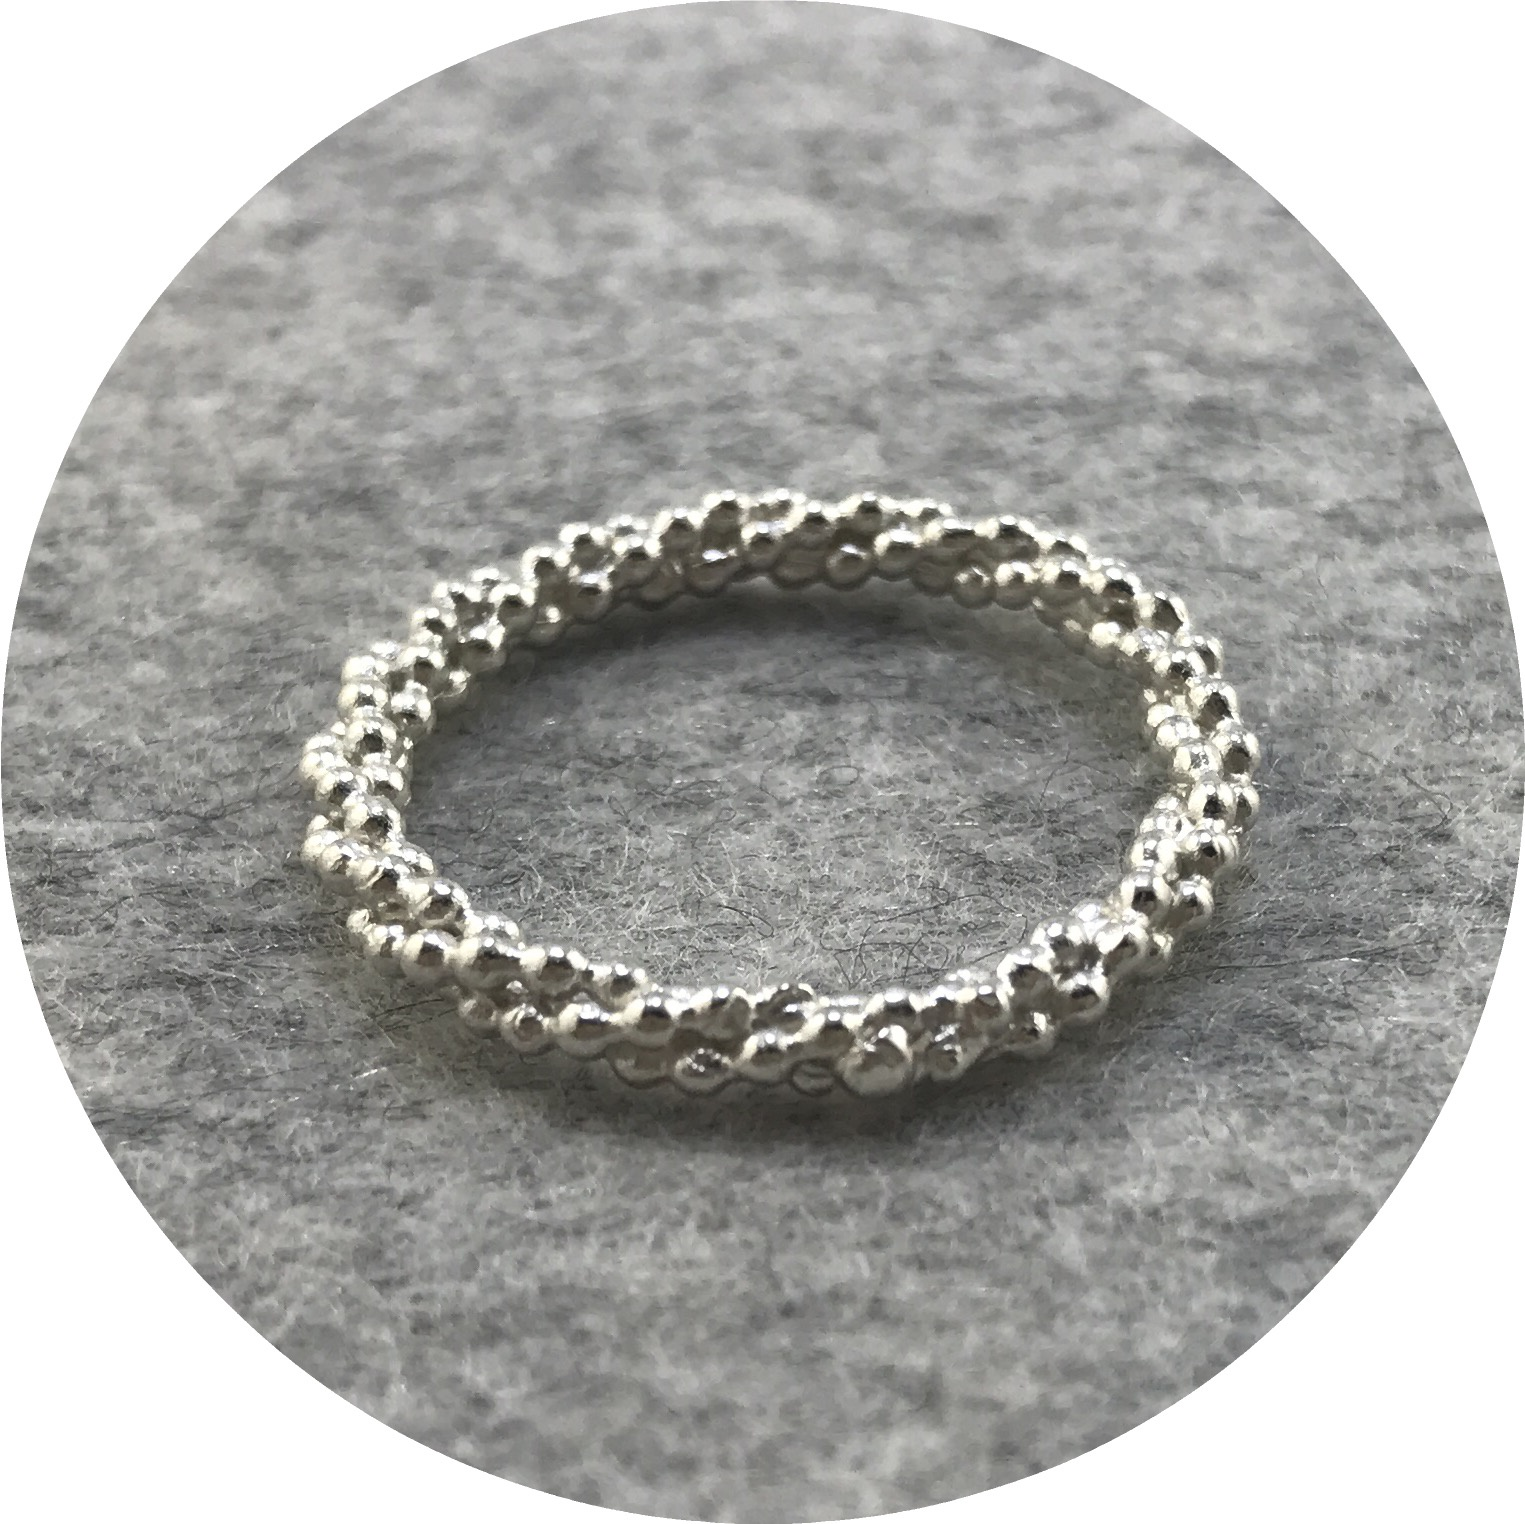 Abby Seymour- Seed Ring. Sterling silver.